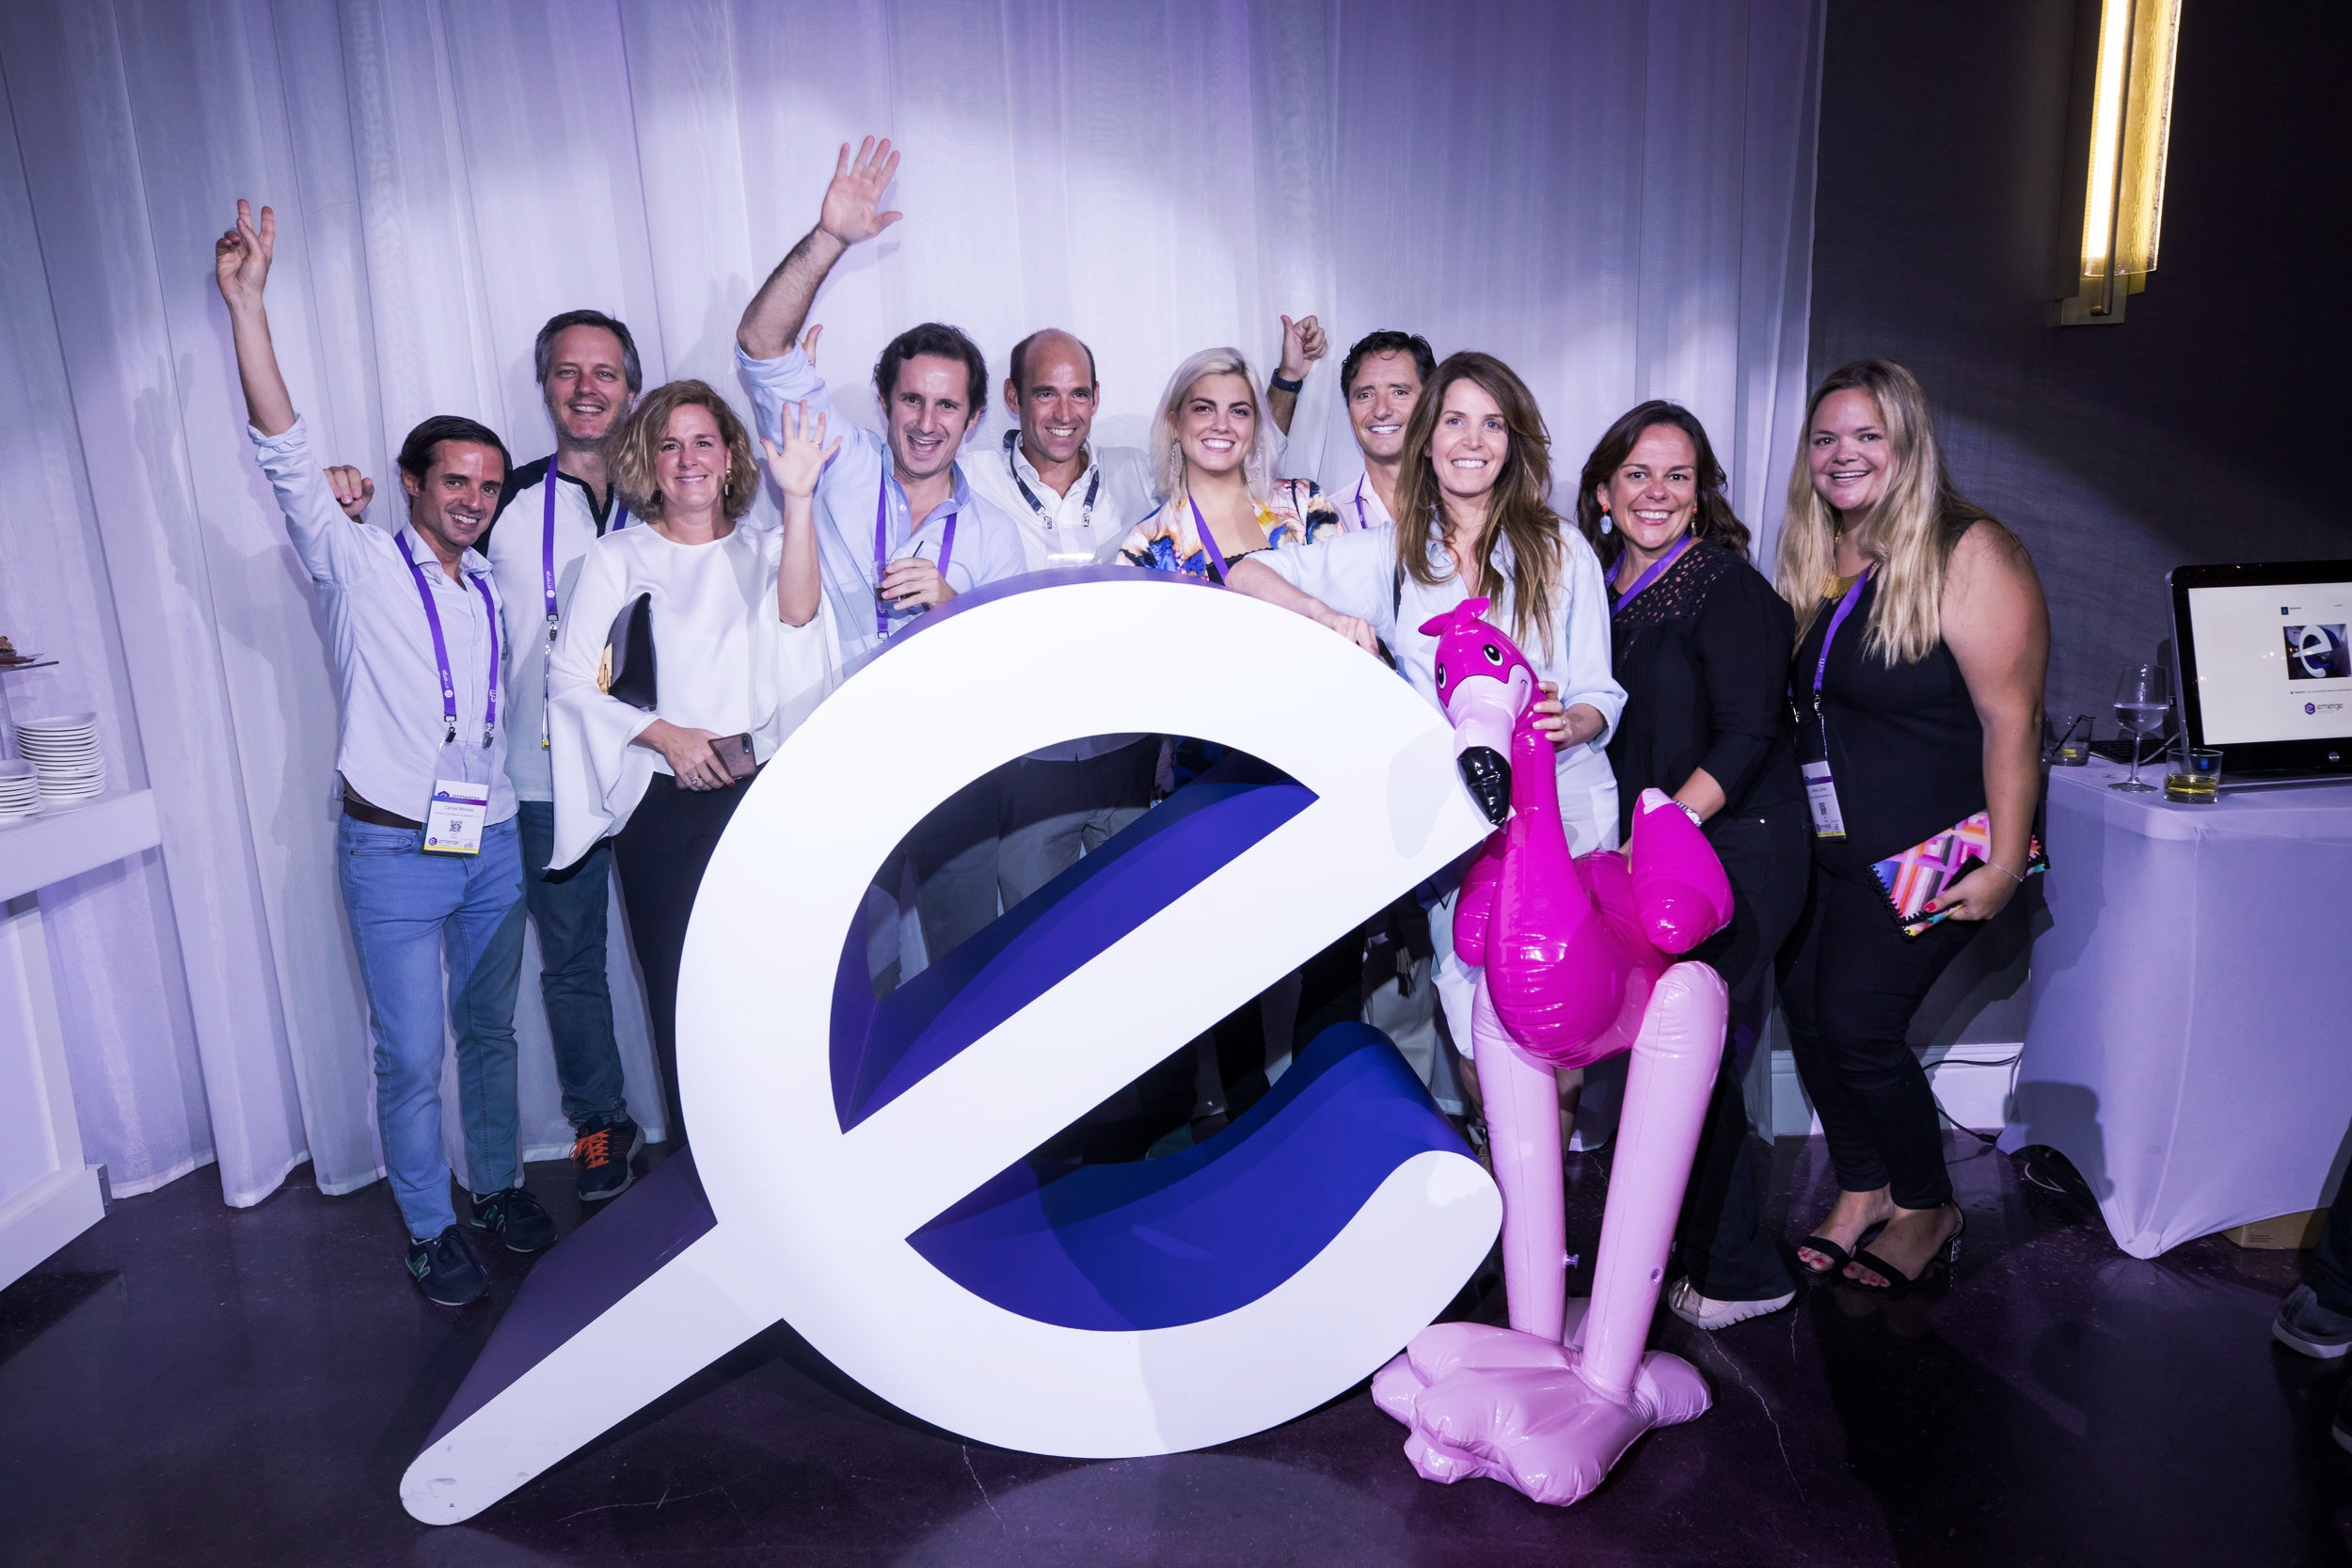 6-11-17 Emerge Opening Party-231.jpg